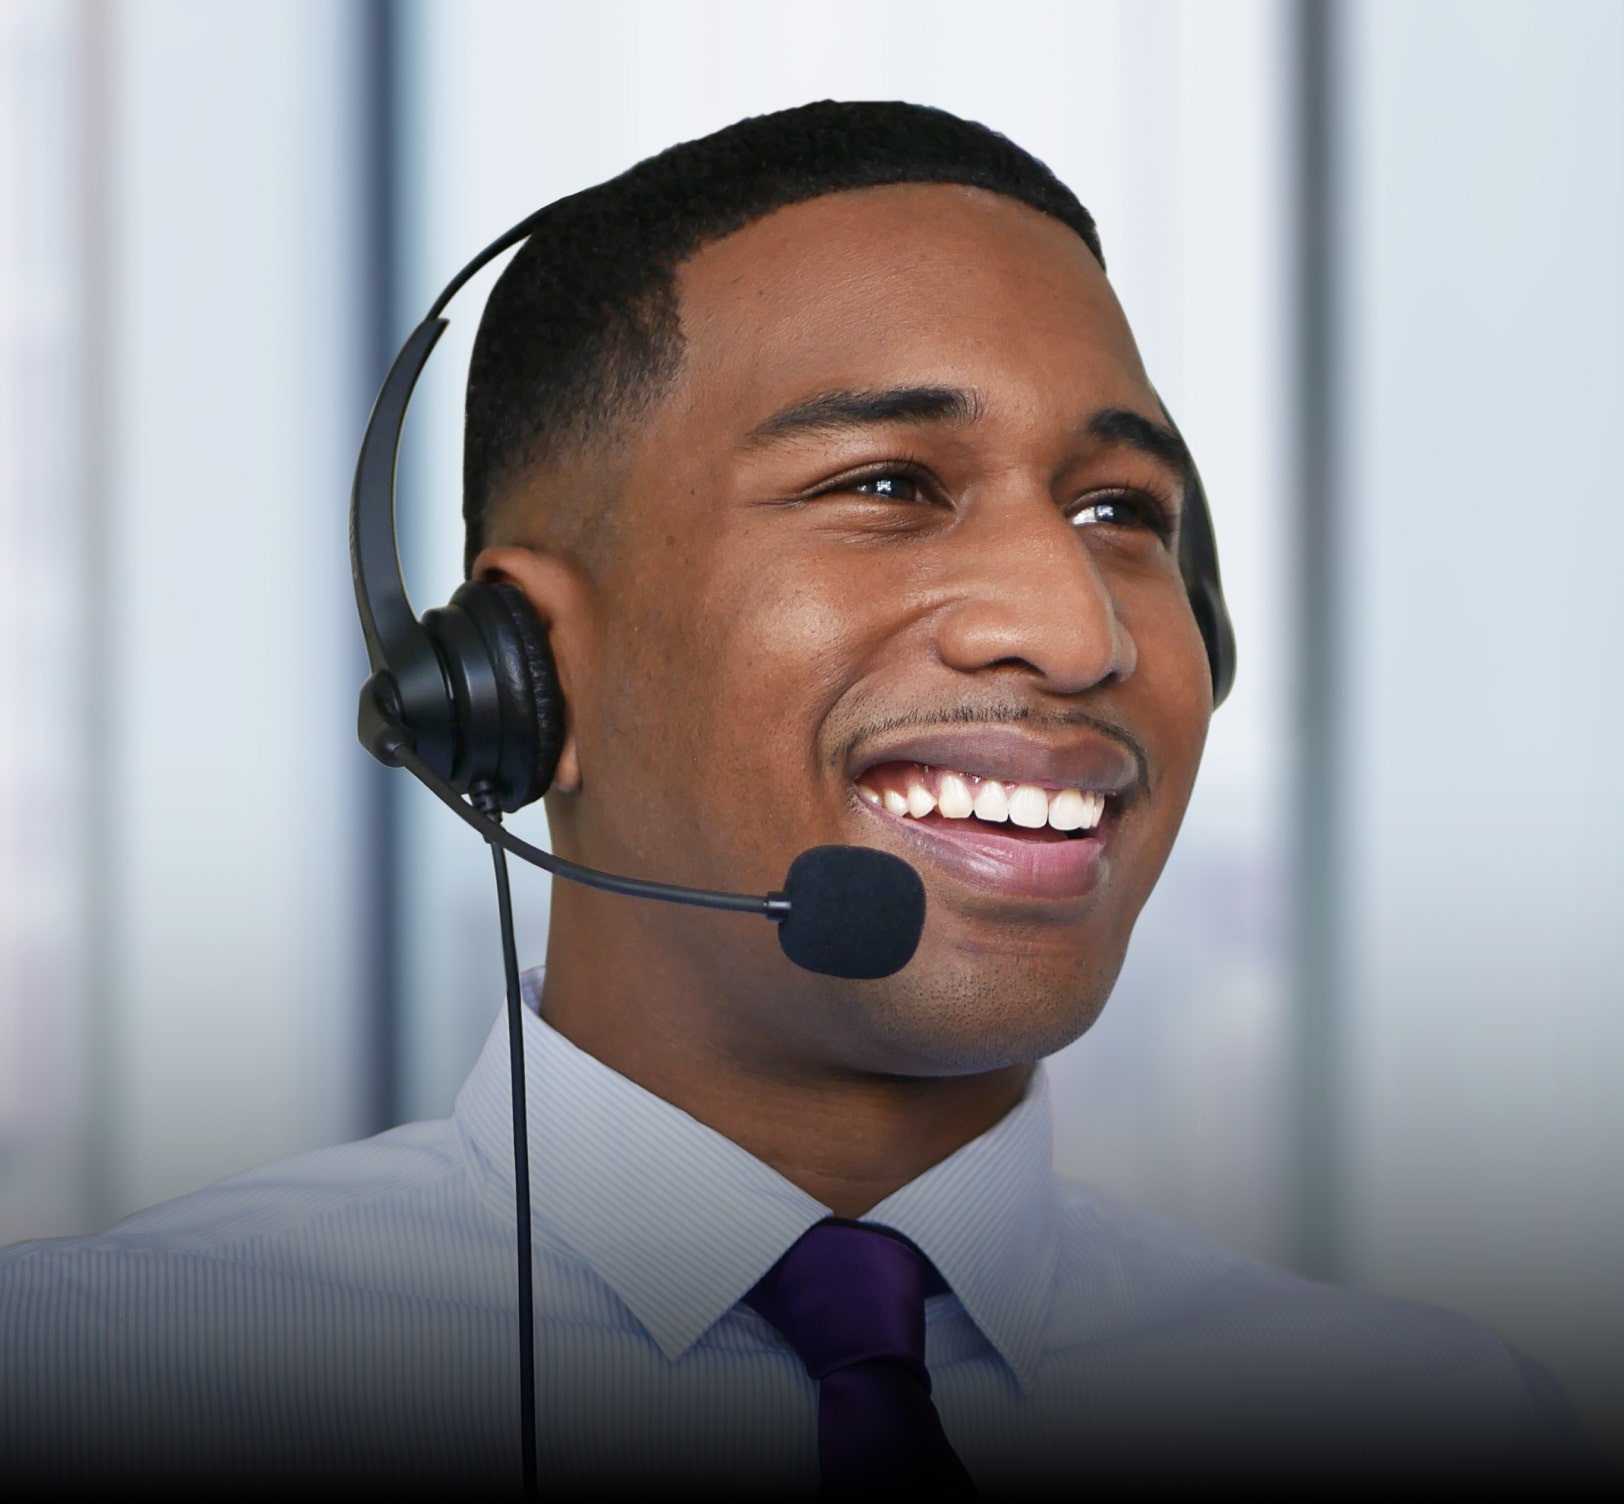 Equals Money customer service image